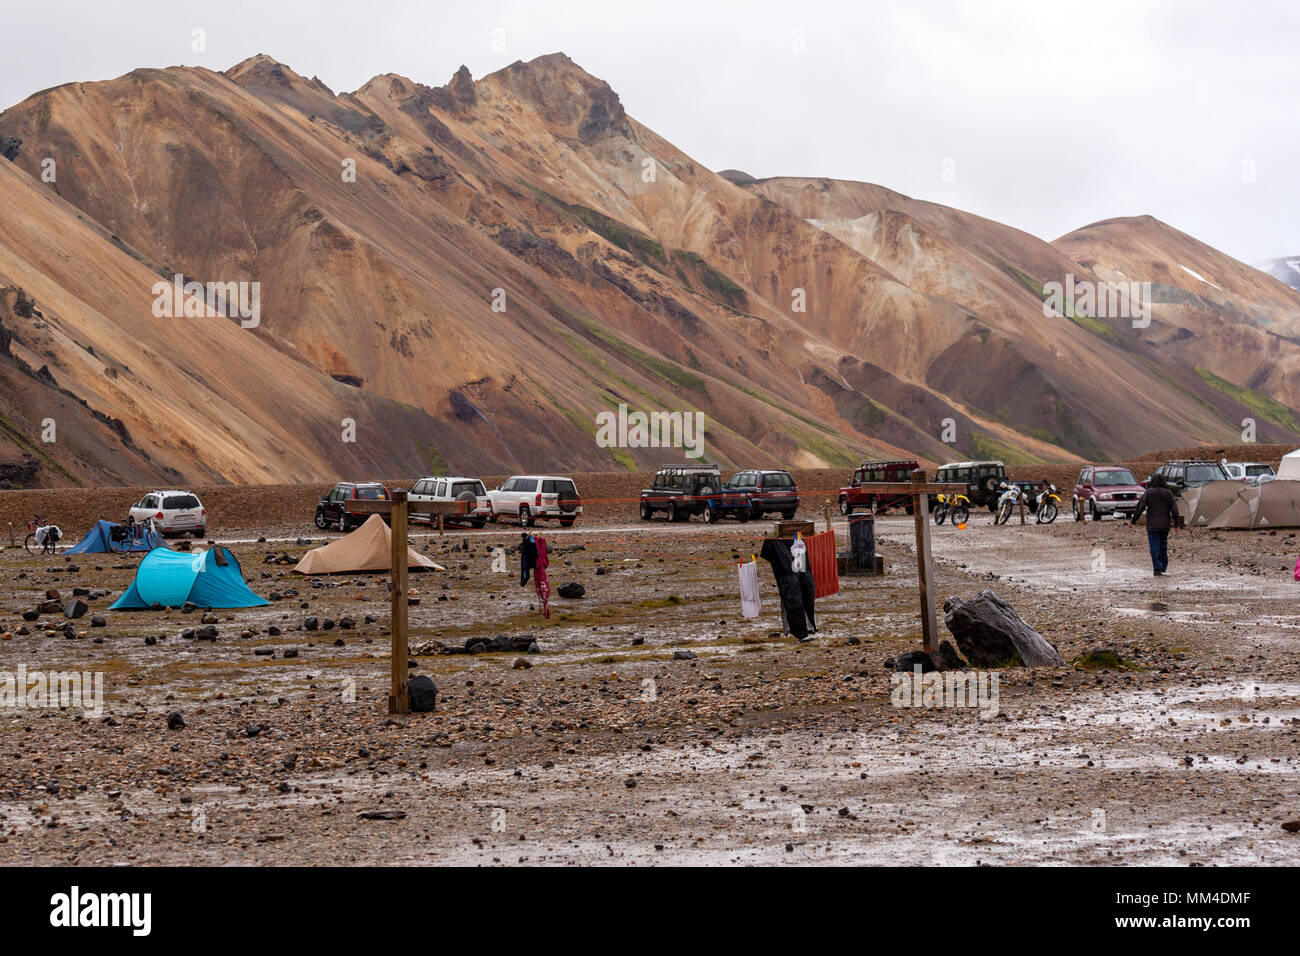 Cloths drying in a wet day in the campsite in the Landmannalaugar valley, Landmannalaugar,  Fjallabak Nature Reserve, Iceland - Stock Image